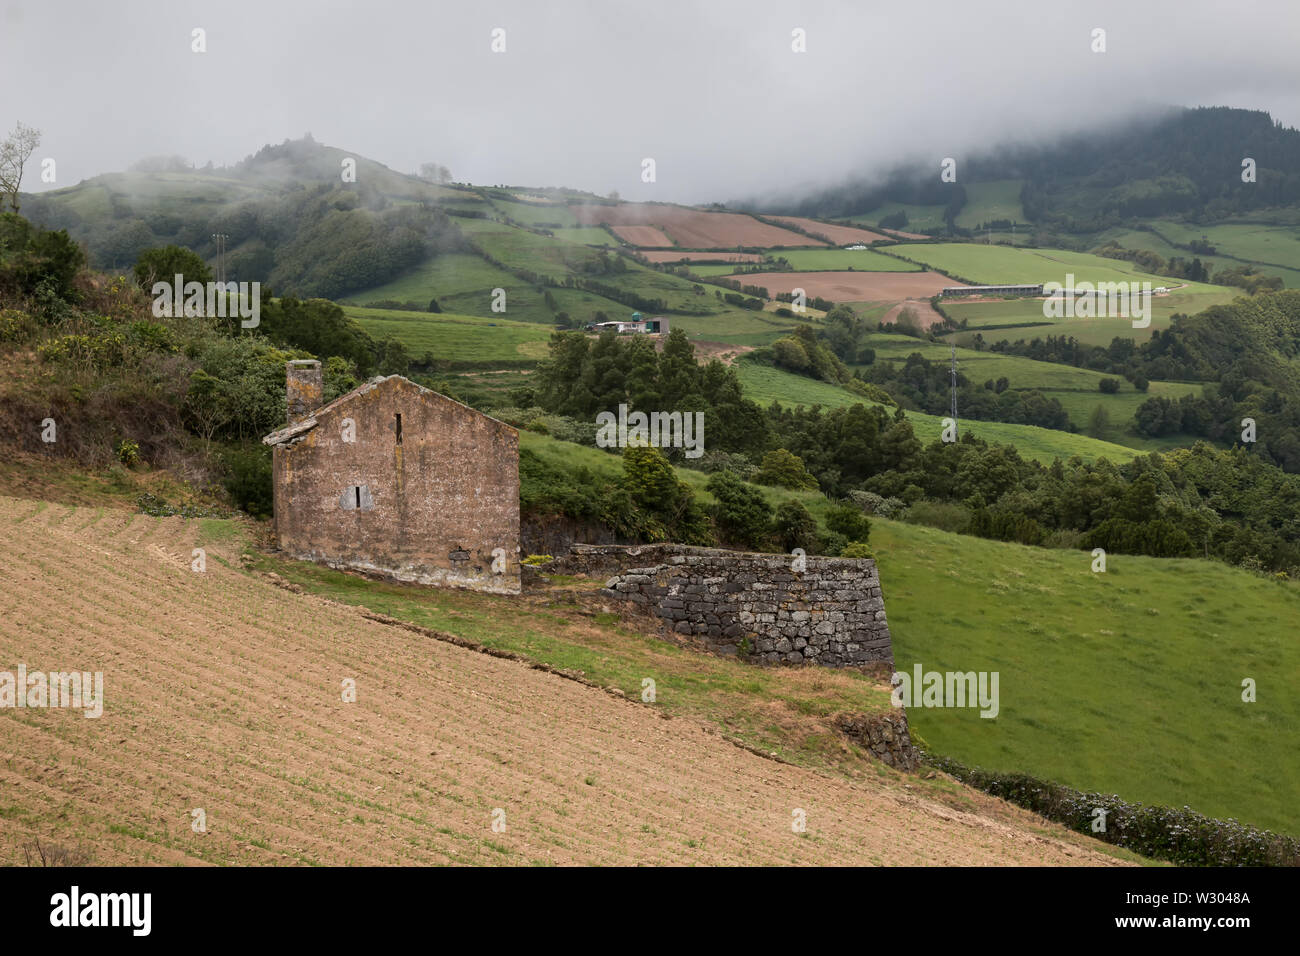 Old abandoned house in the middle of fields and meadows, in a mountain valley. Intense clouds on the sky. South of Sao Miguel, Azores Islands, Portuga - Stock Image